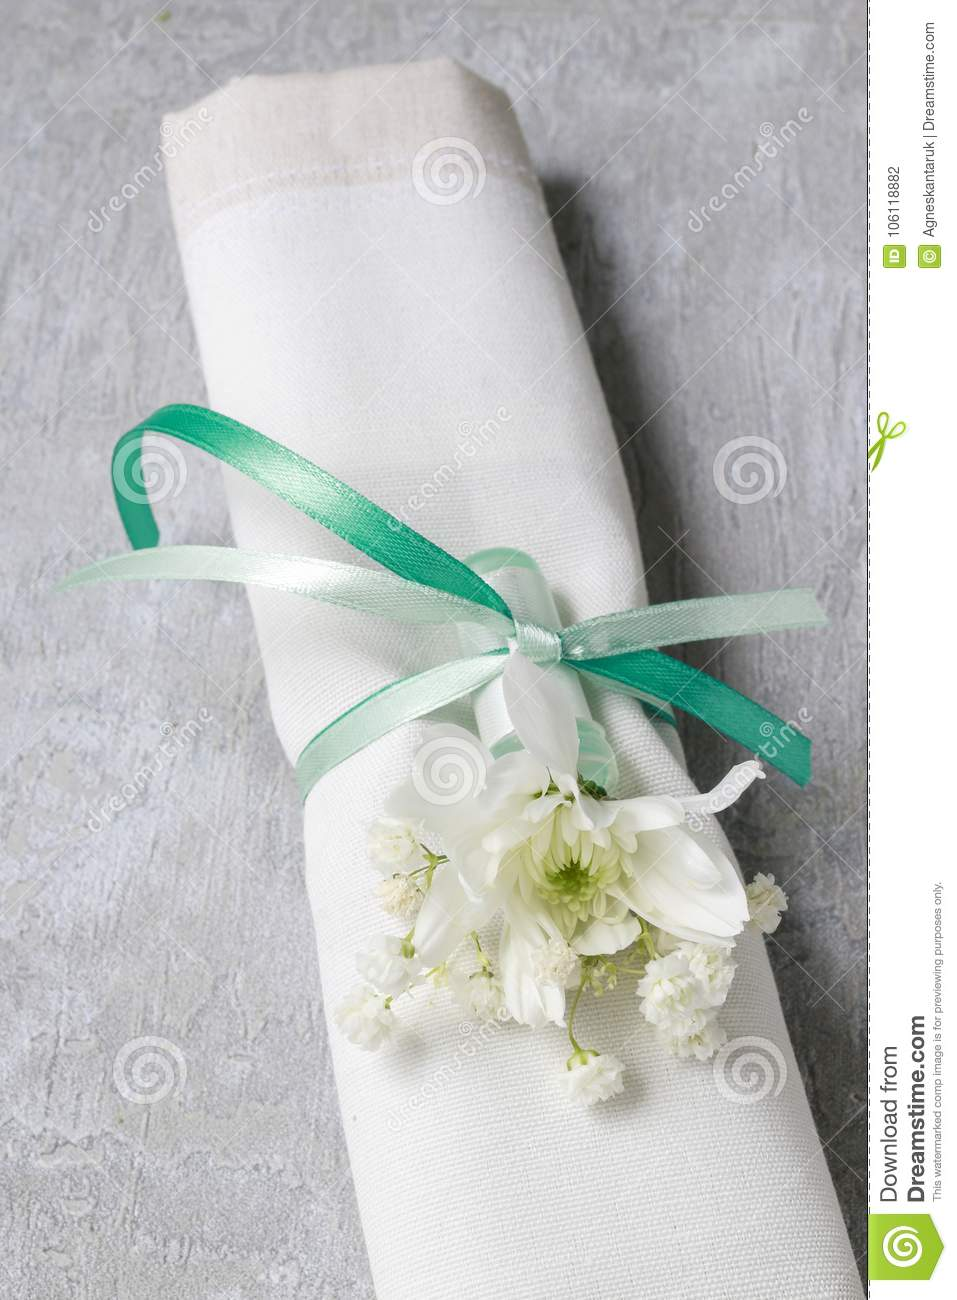 Florist At Work How To Make Napkin Ring With Chrysanthemum Flow